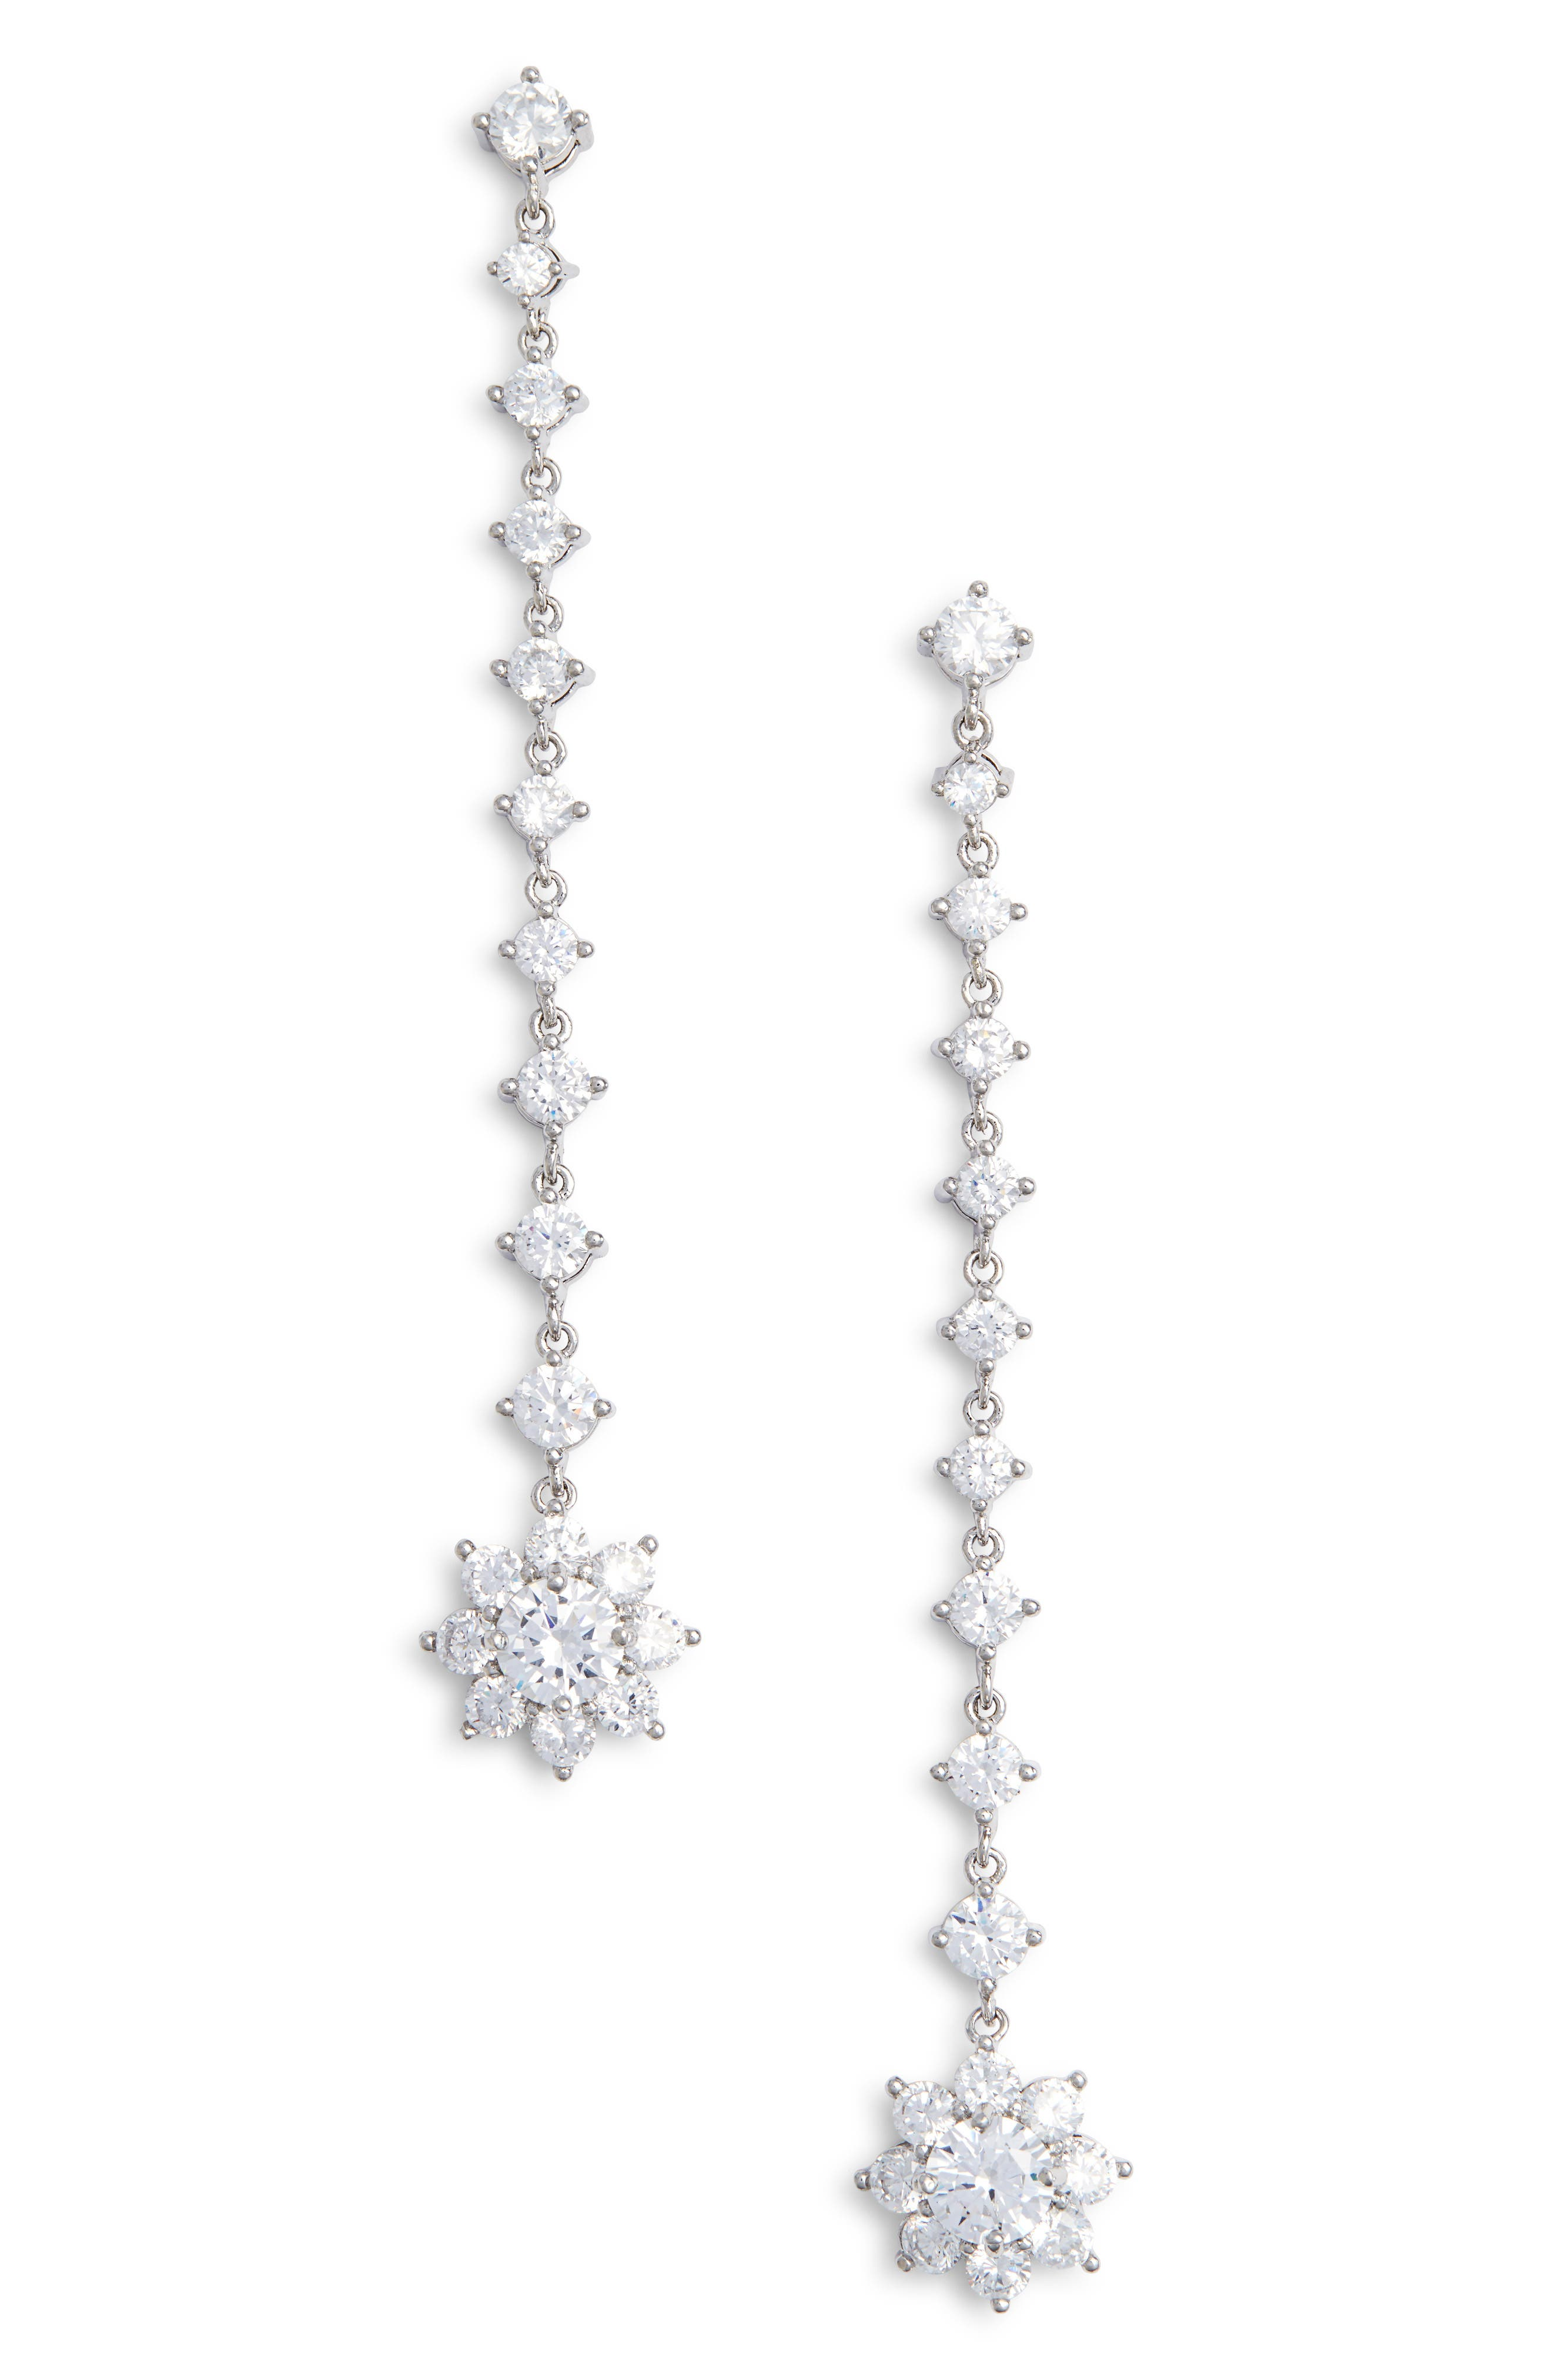 Small Flower Linear Drop Earrings,                         Main,                         color, SILVER/ WHITE CZ